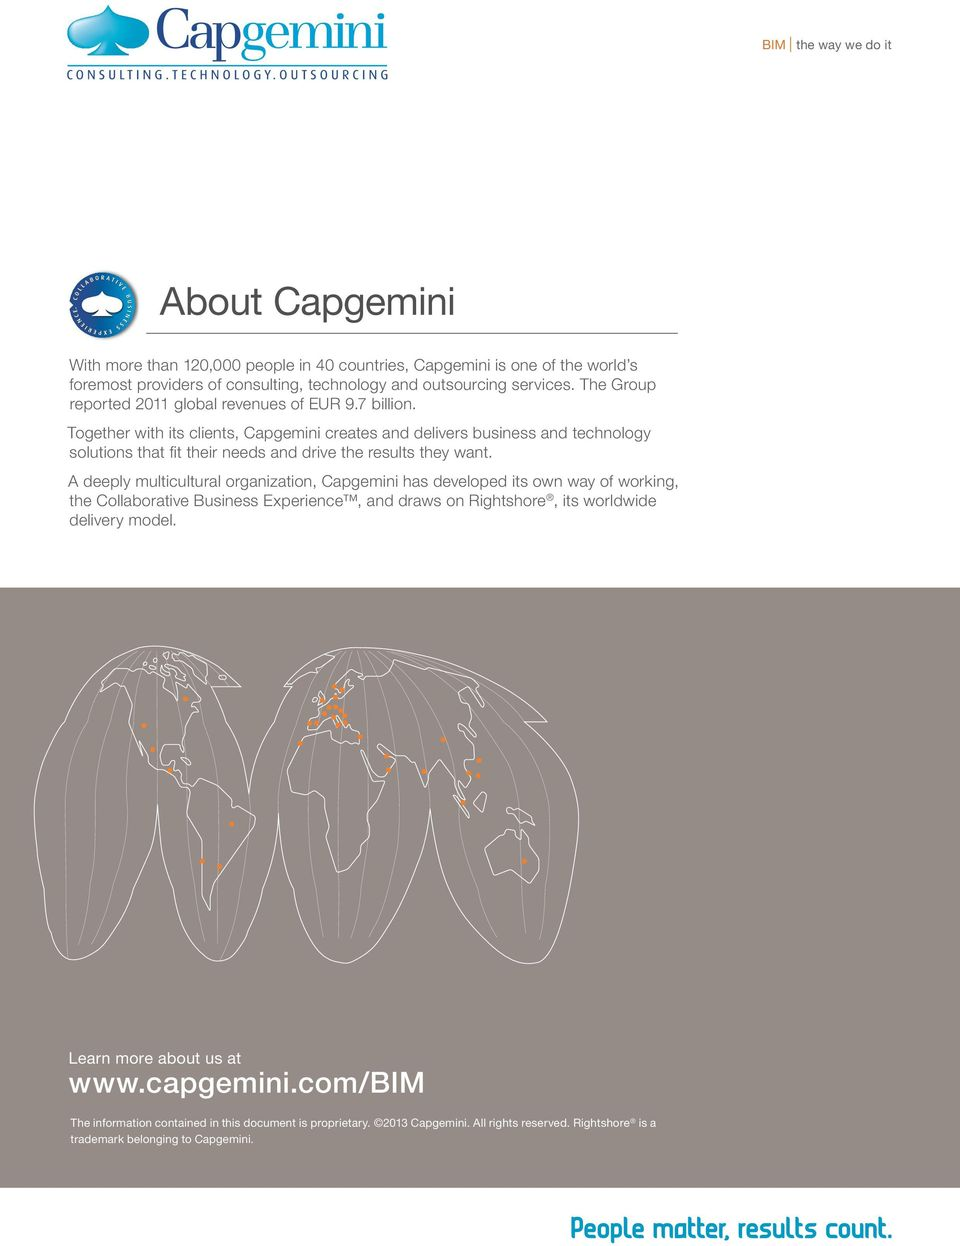 Together with its clients, Capgemini creates and delivers business and technology solutions that fit their needs and drive the results they want.